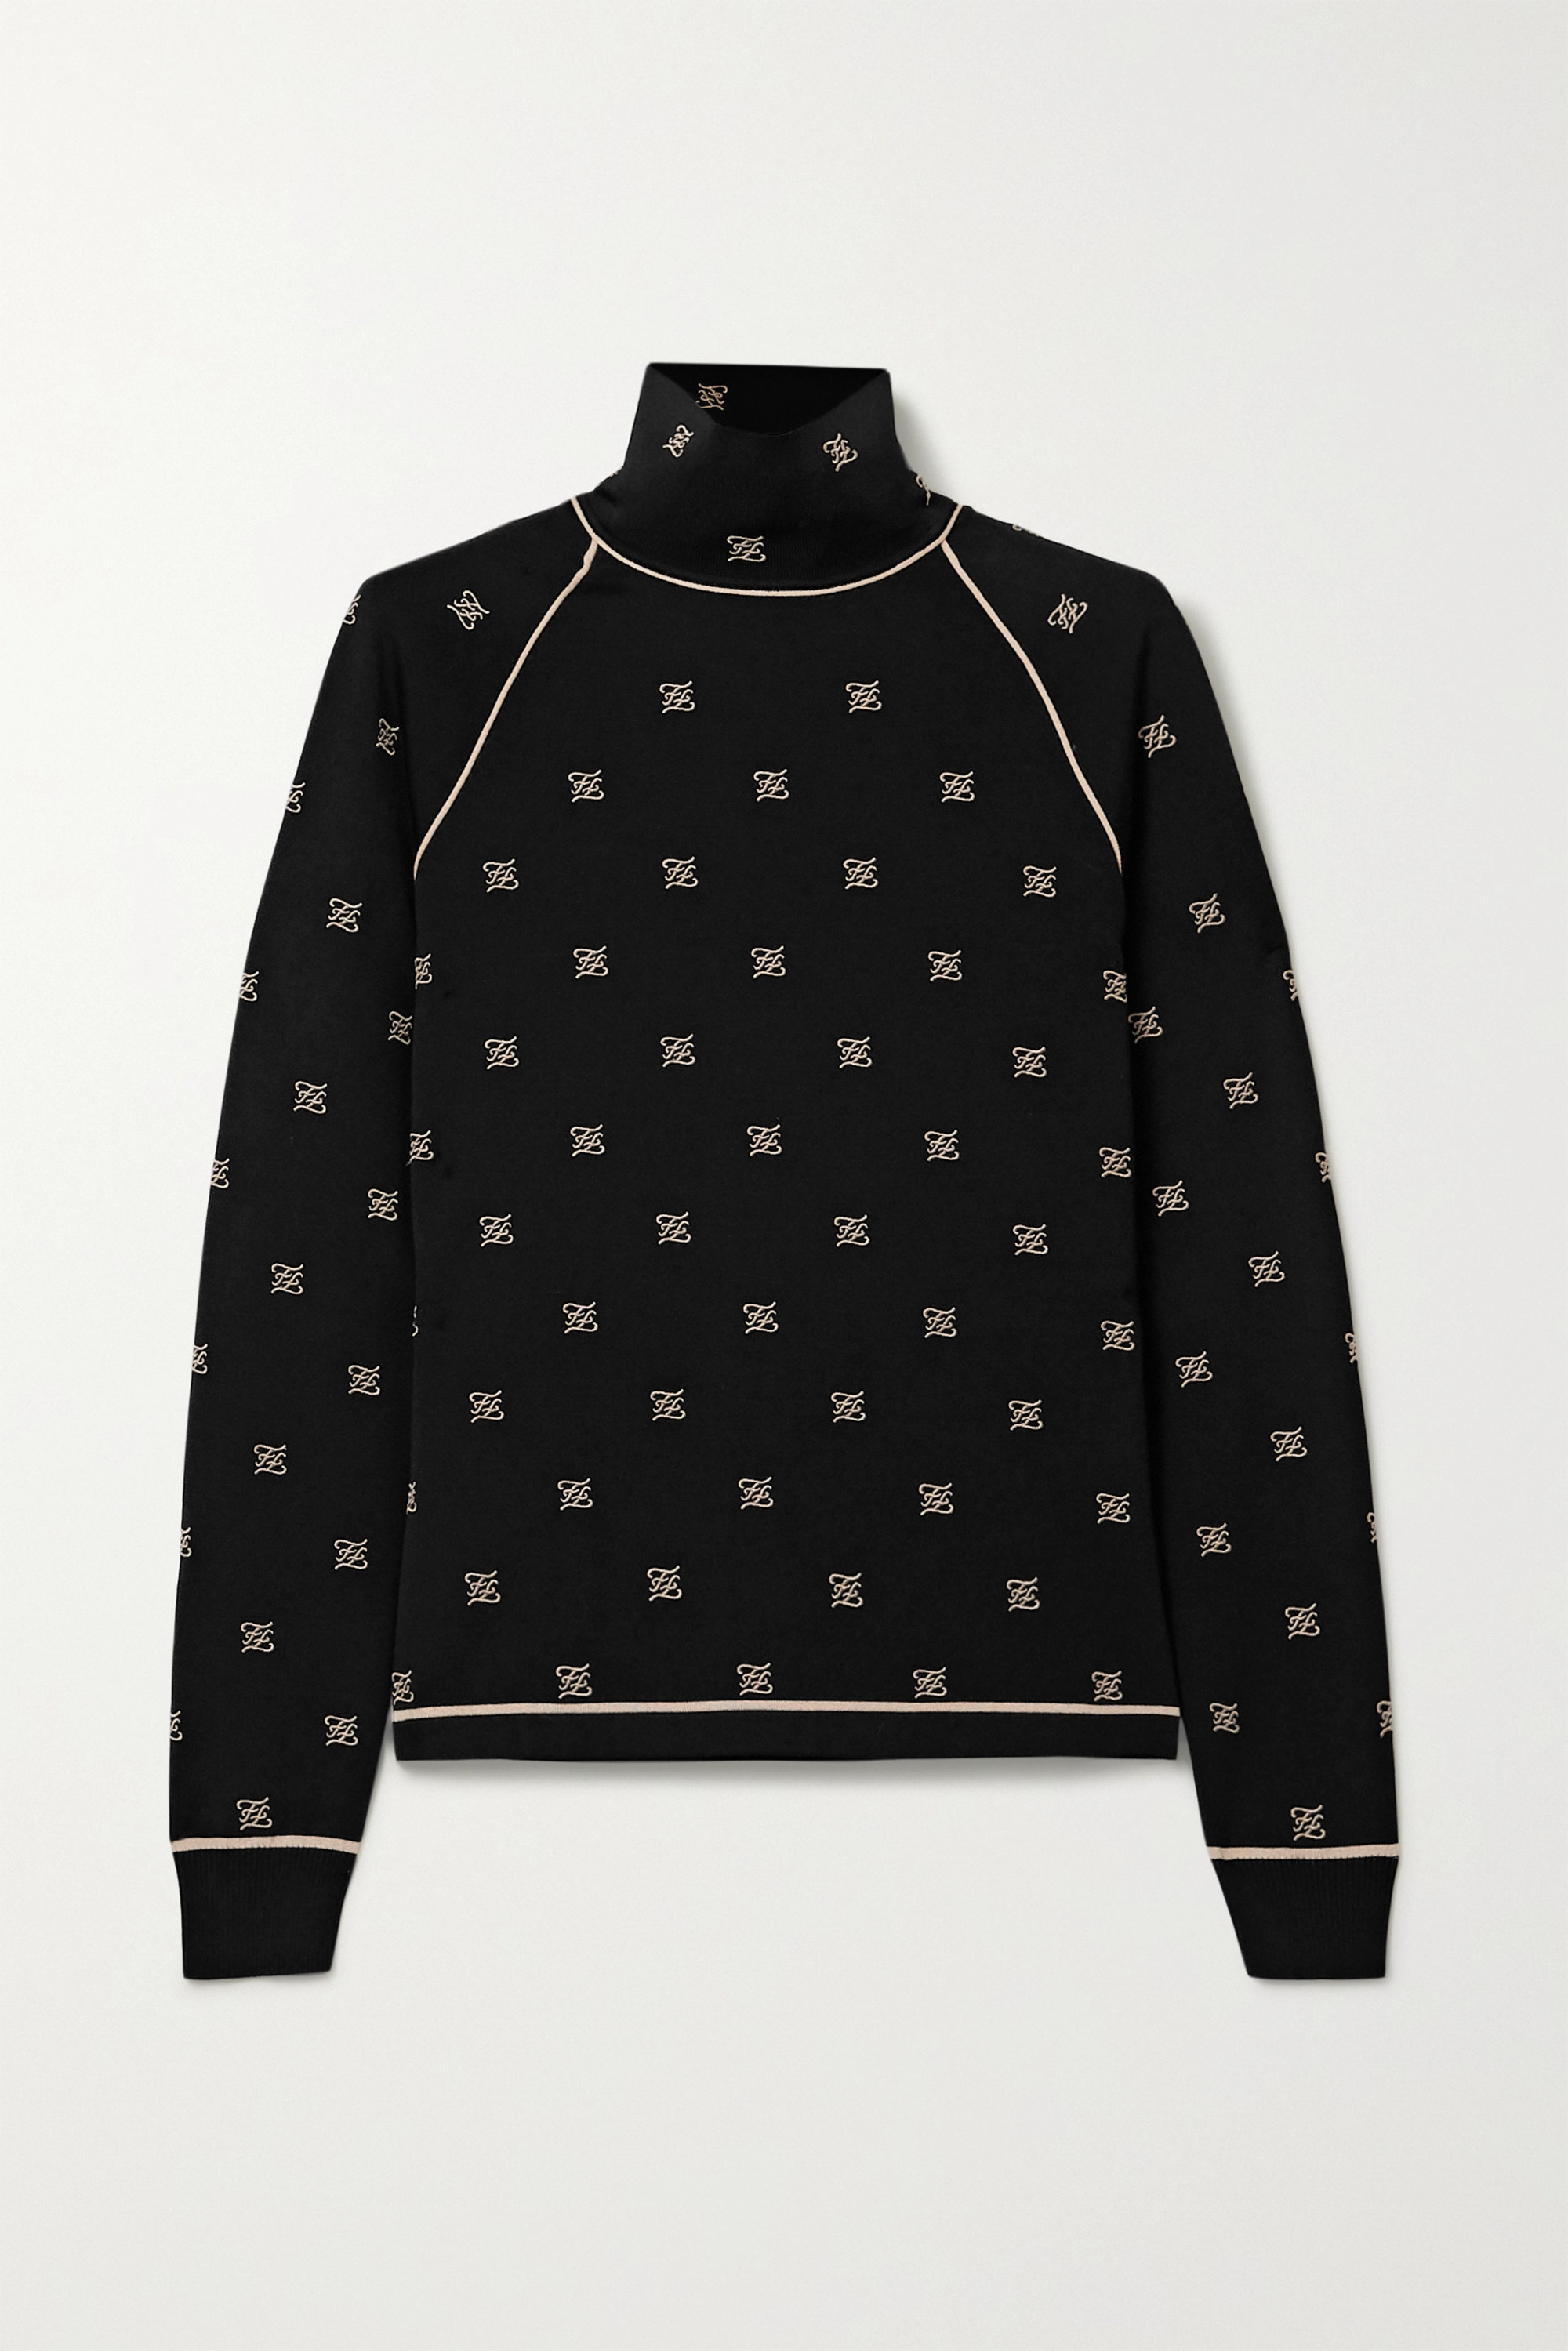 Fendi Embroidered stretch-jersey turtleneck top